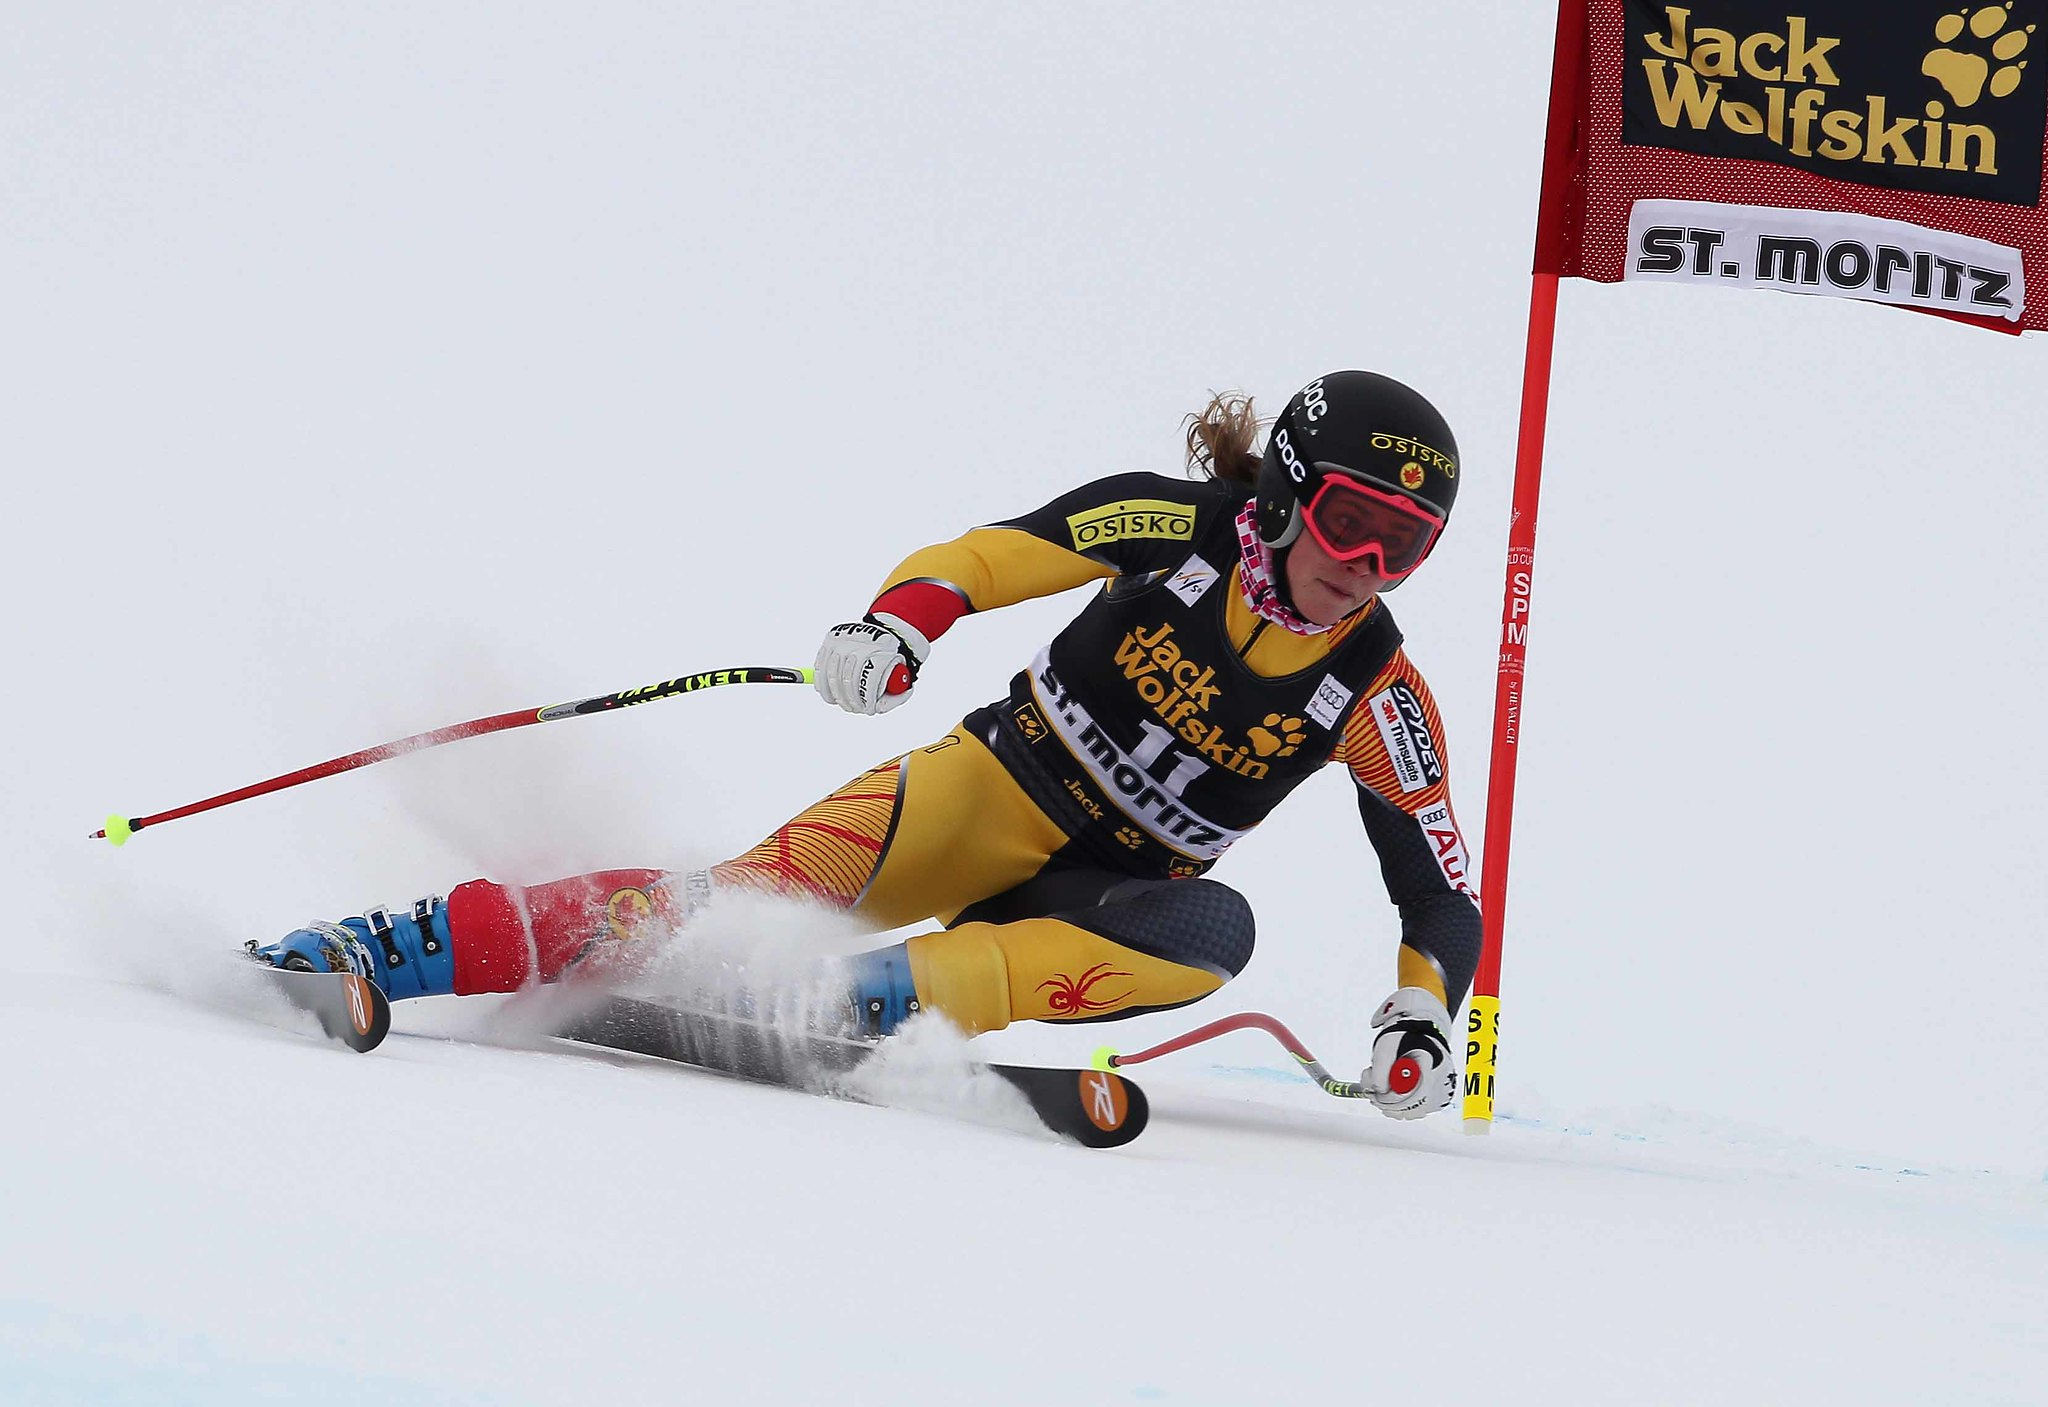 Marie-Michèle Gagnon competes in super combined in St. Moritz, Switzerland.